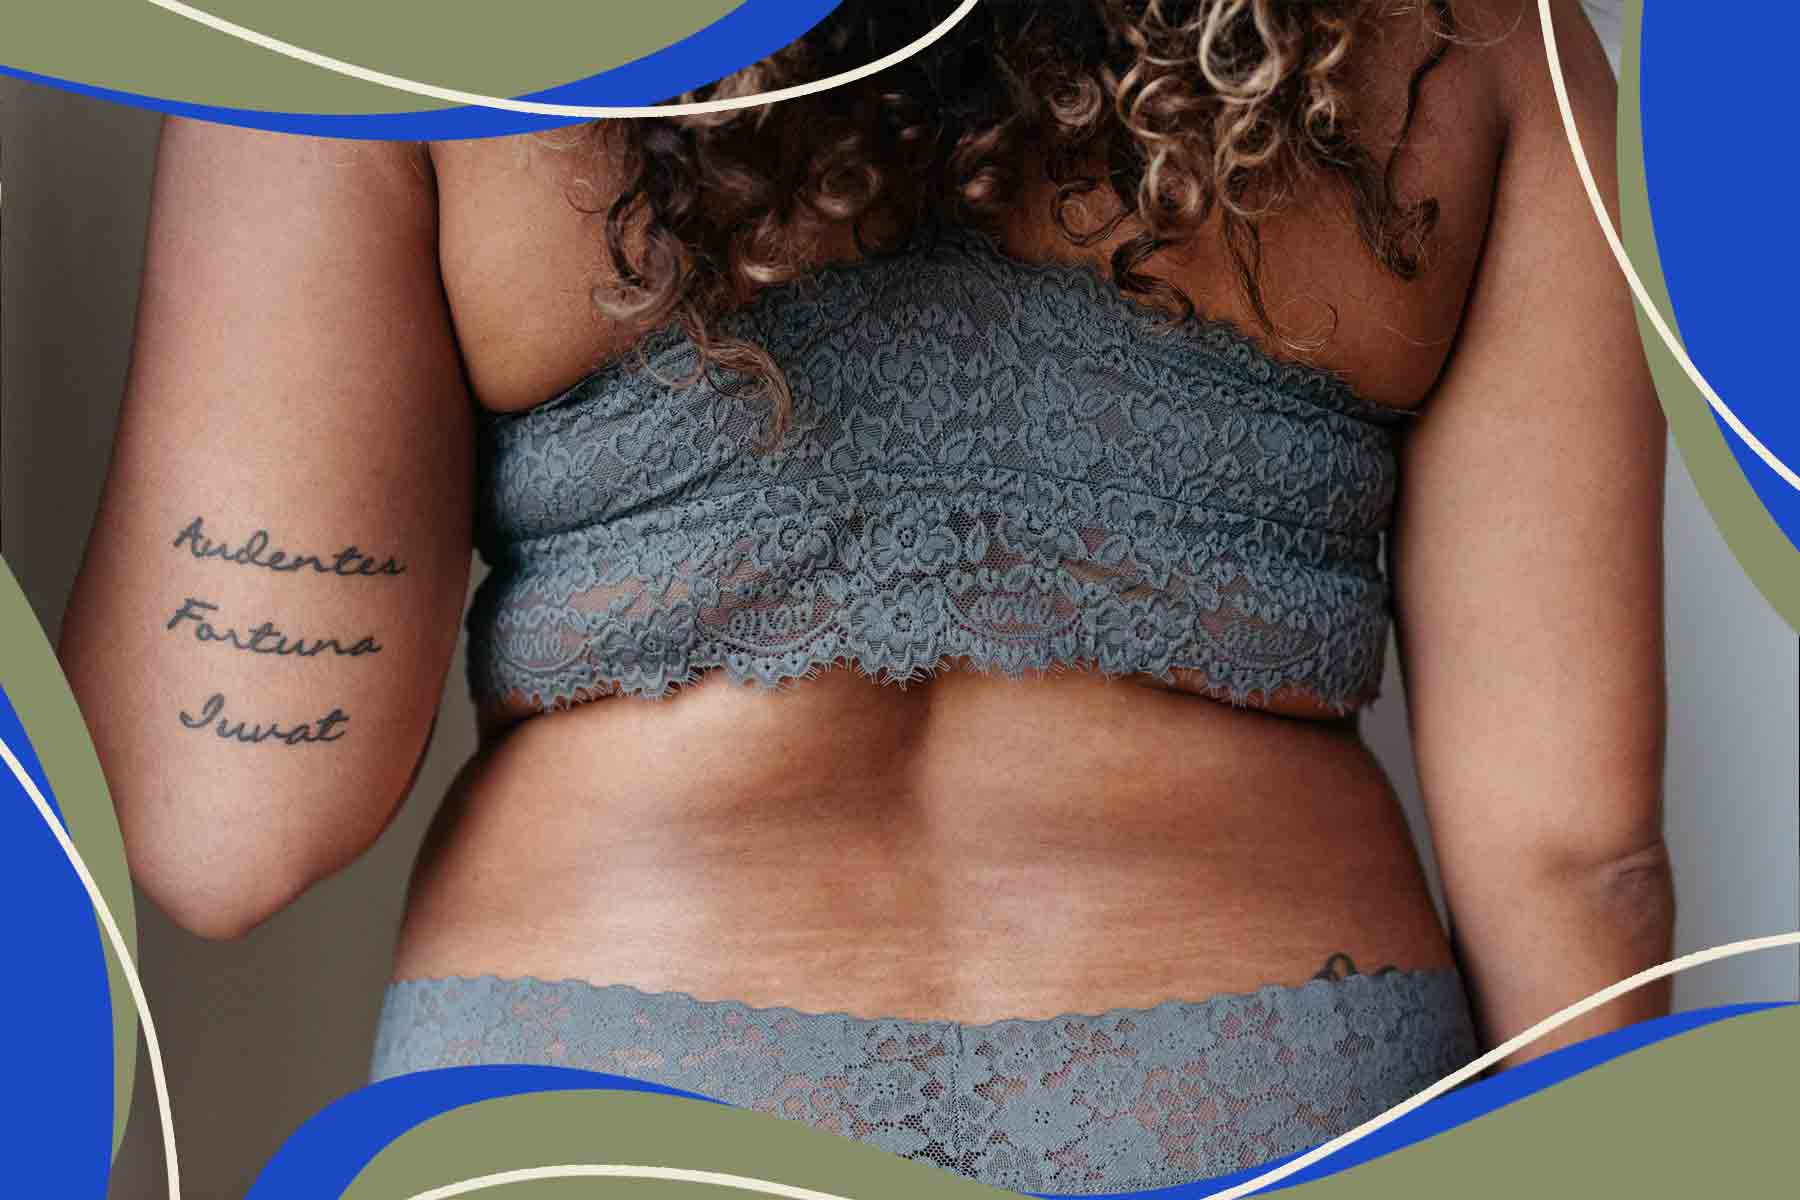 Stretch Marks Happen. Why Do Women Have to Love Them, Too?